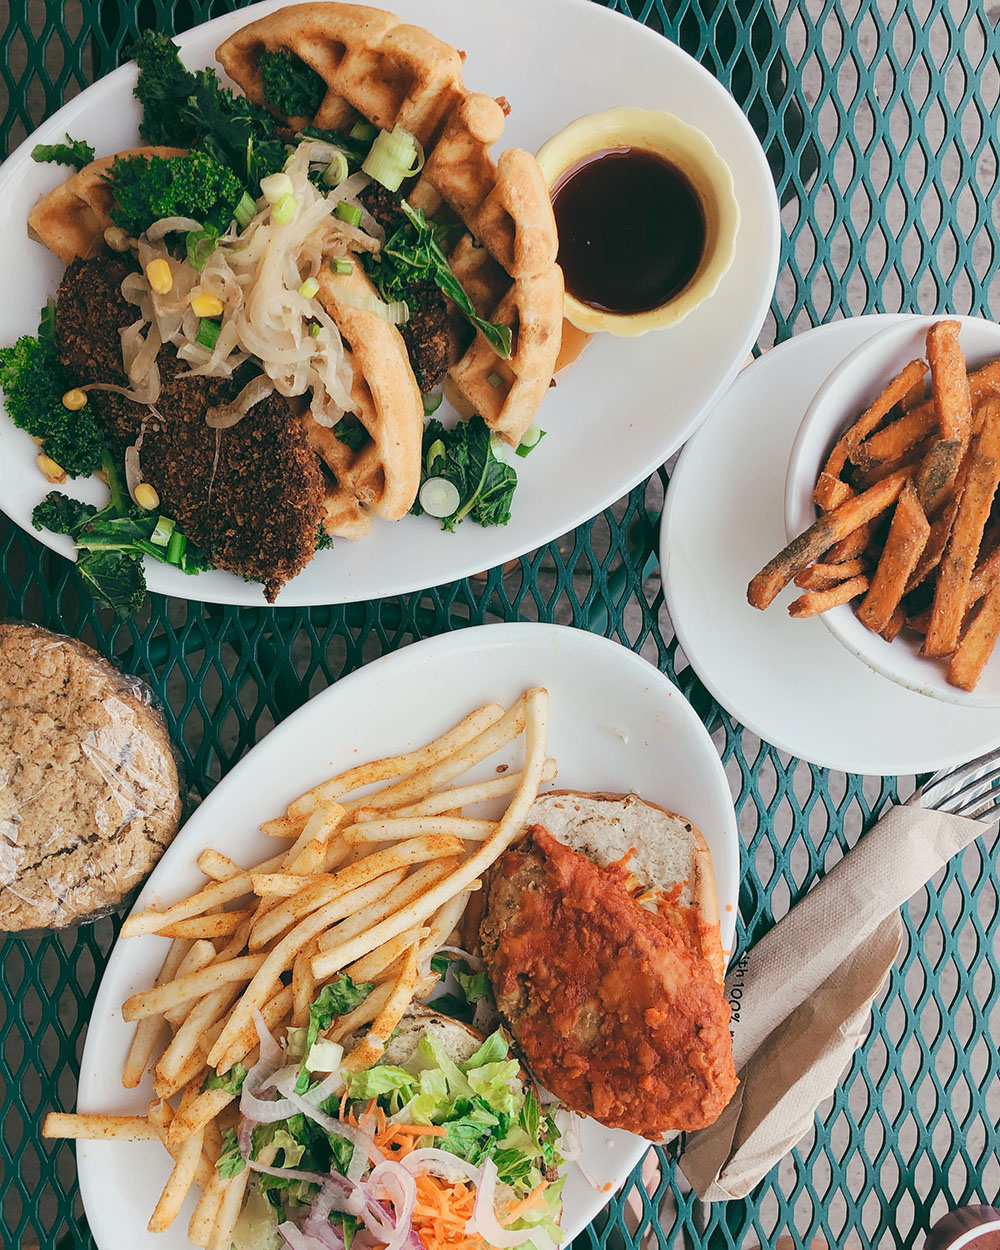 The Ultimate Guide to the BEST Vegan Food in Denver. Chicken and waffles from Native Foods Cafe.